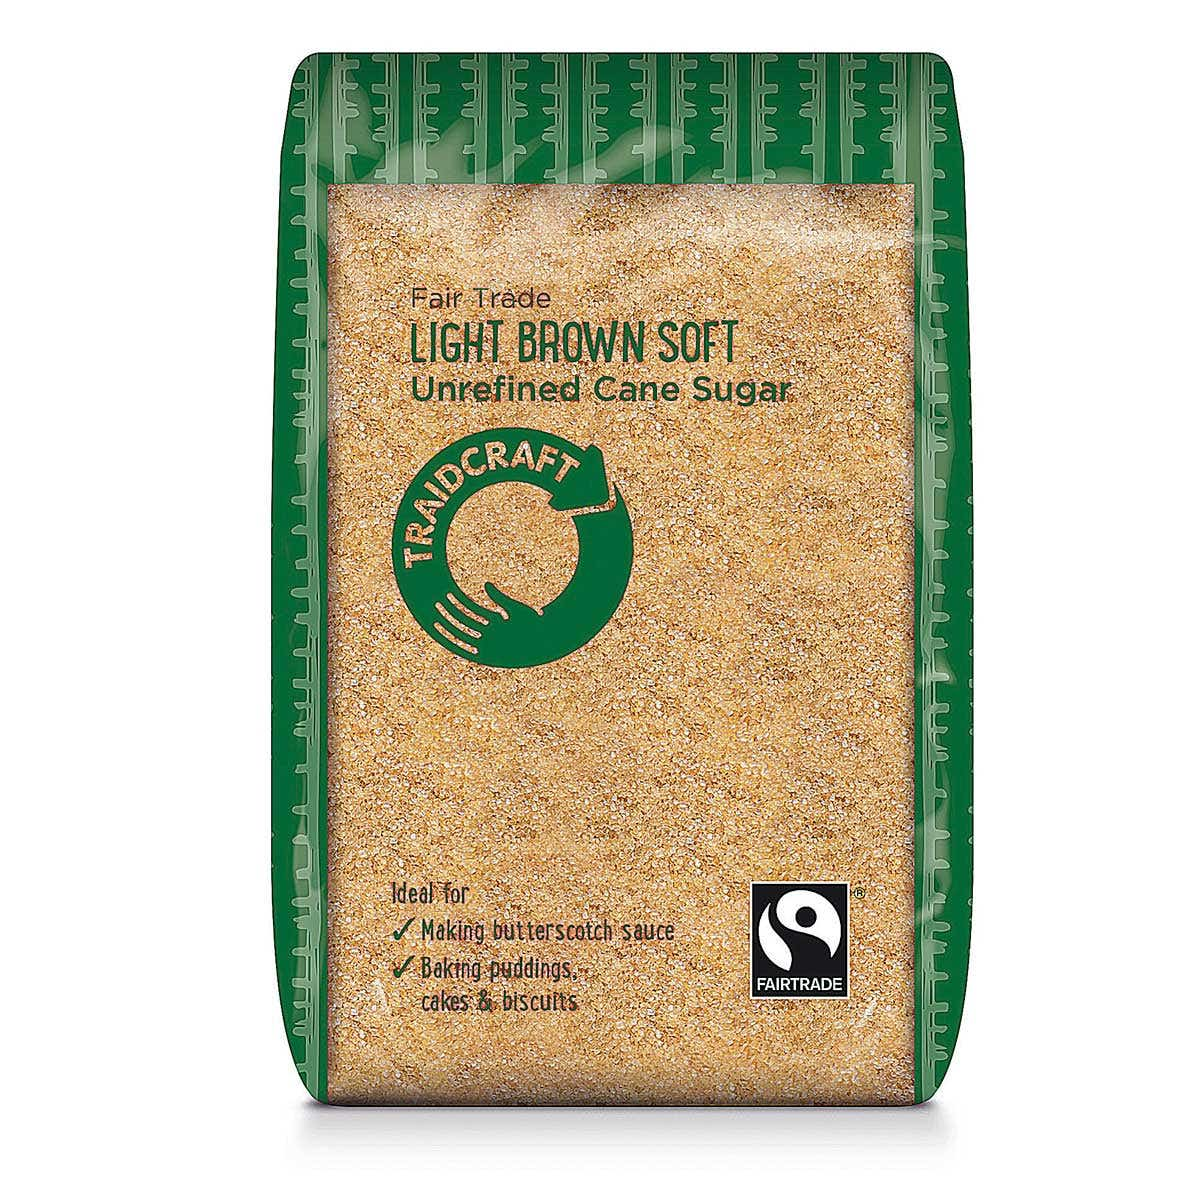 Traidcraft Light Brown Soft Sugar (6x500g) CASE